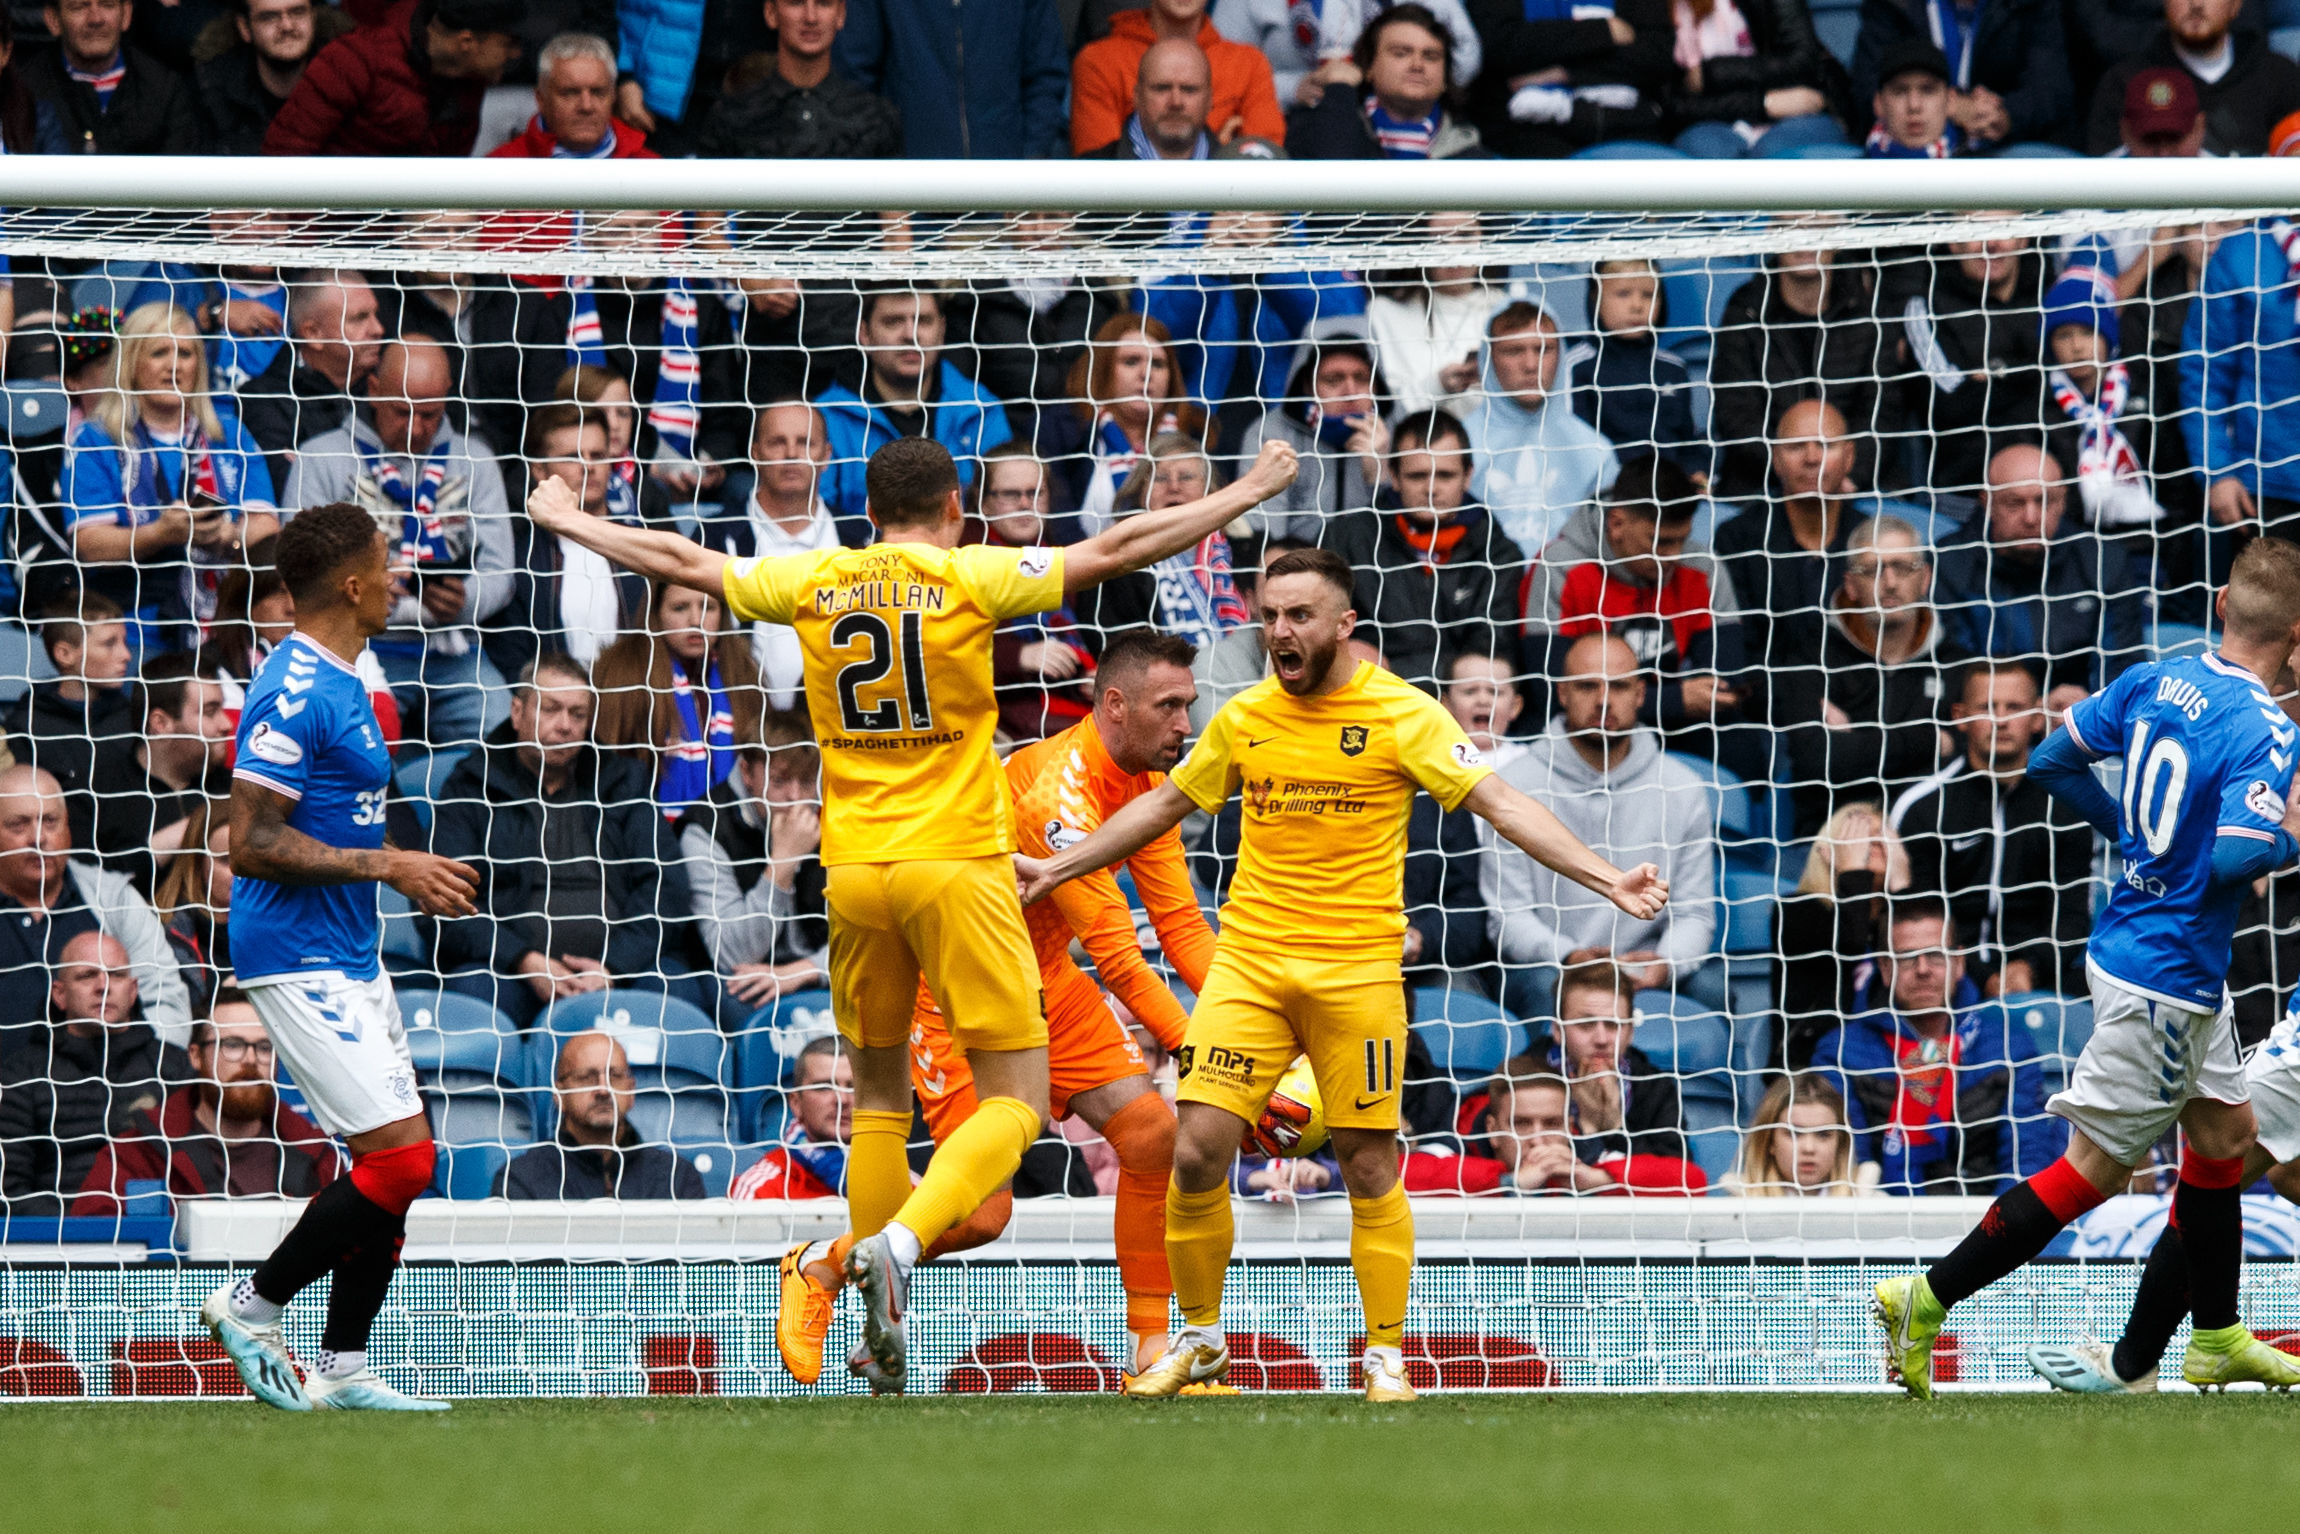 Chris Erskine reckons Livingston can be proud of their efforts in defeat to Rangers